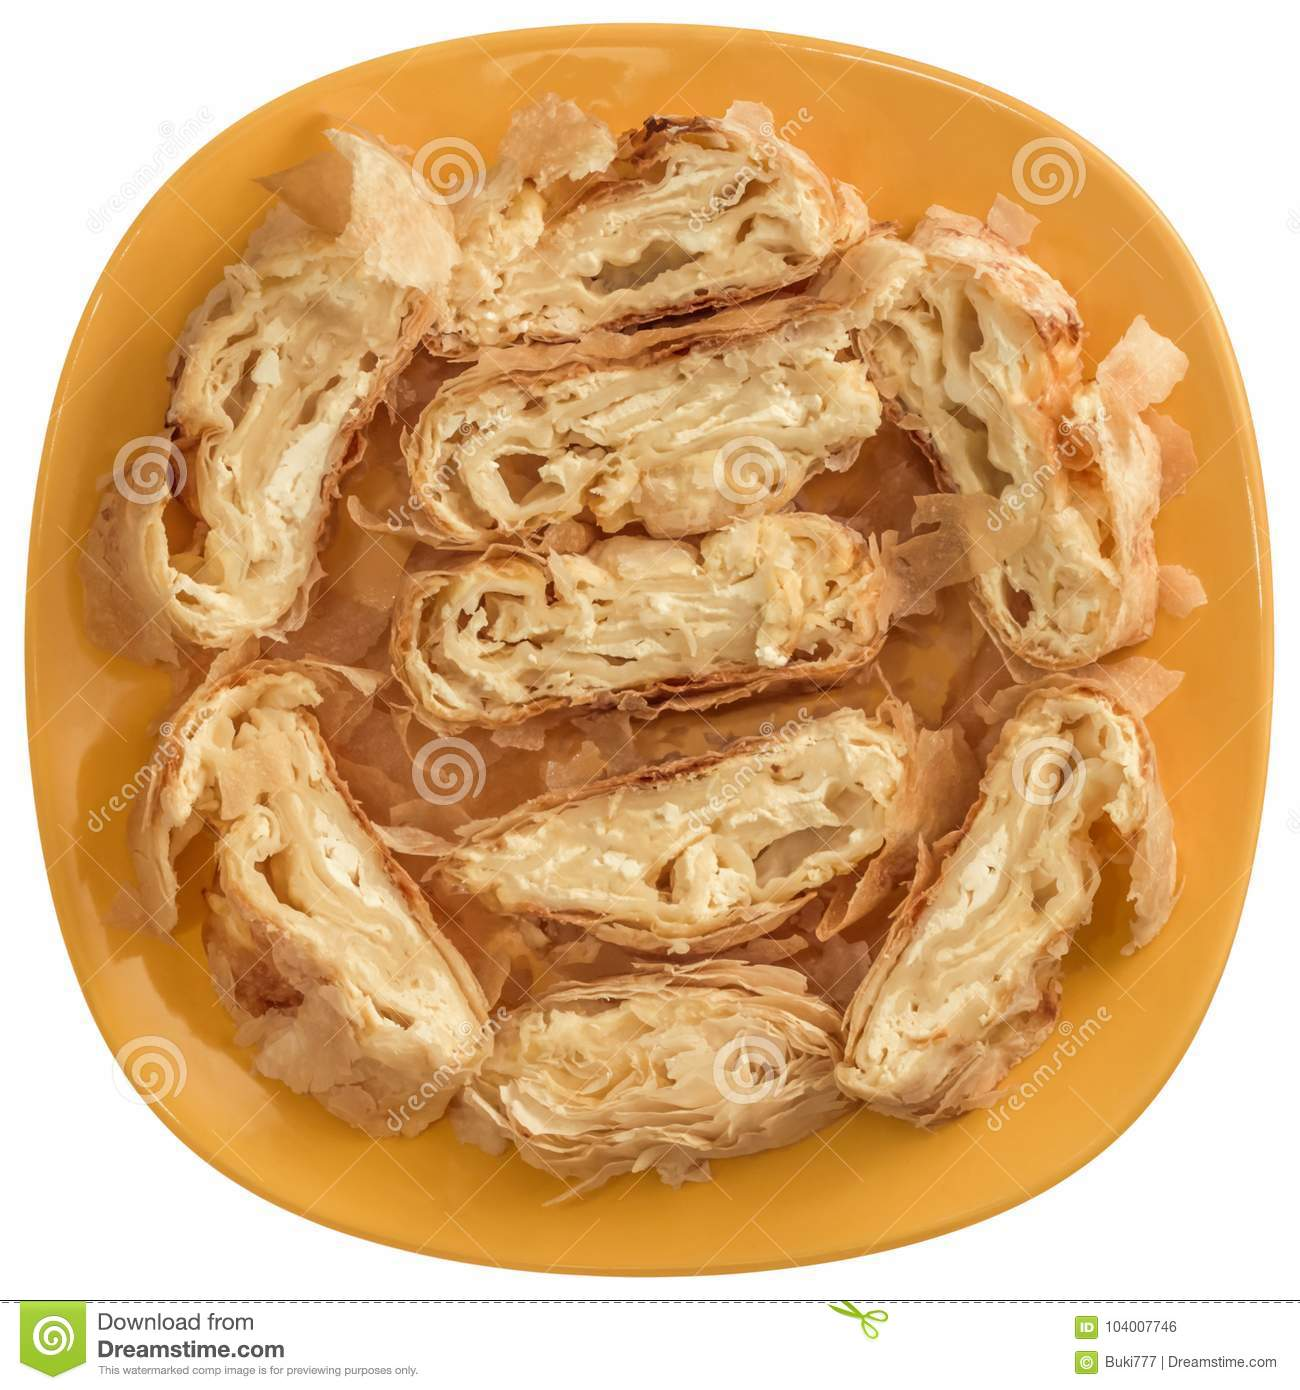 Serbian Traditional Cheese Roll Pie Gibanica Slices Offered On Yellow Ceramic Plate Isolated On White Background